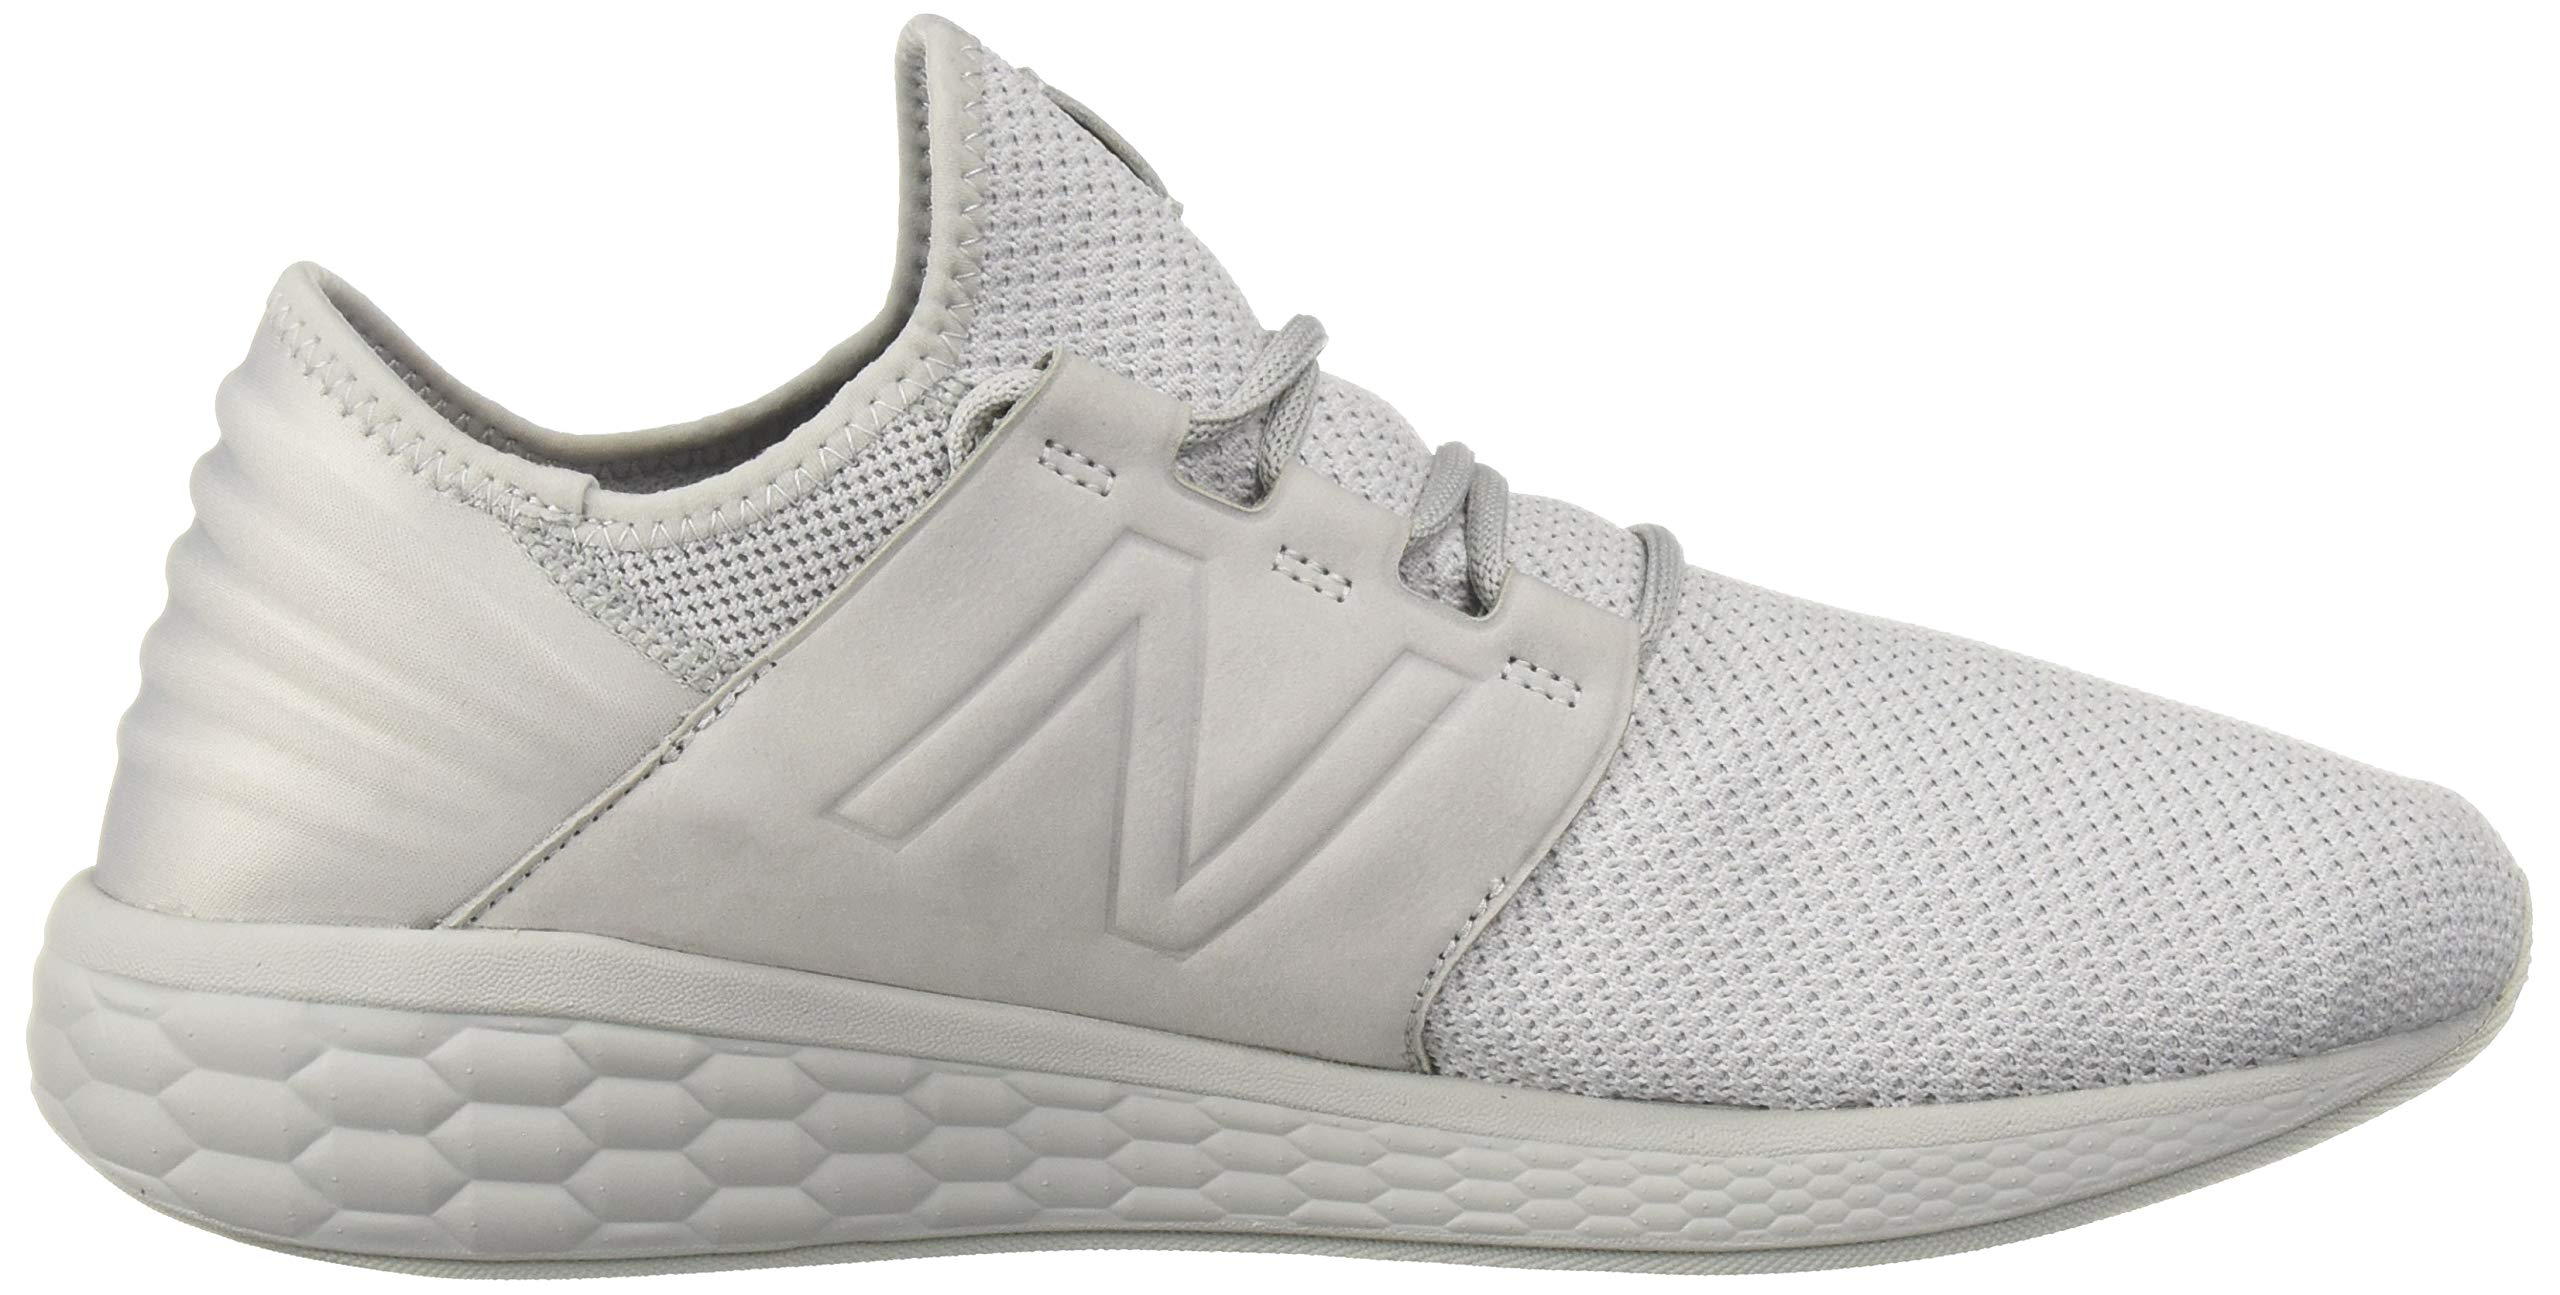 New Balance Men's Cruz V2 Fresh Foam Running Shoe, arctic fox/white/nubuck, 7 D US by New Balance (Image #7)